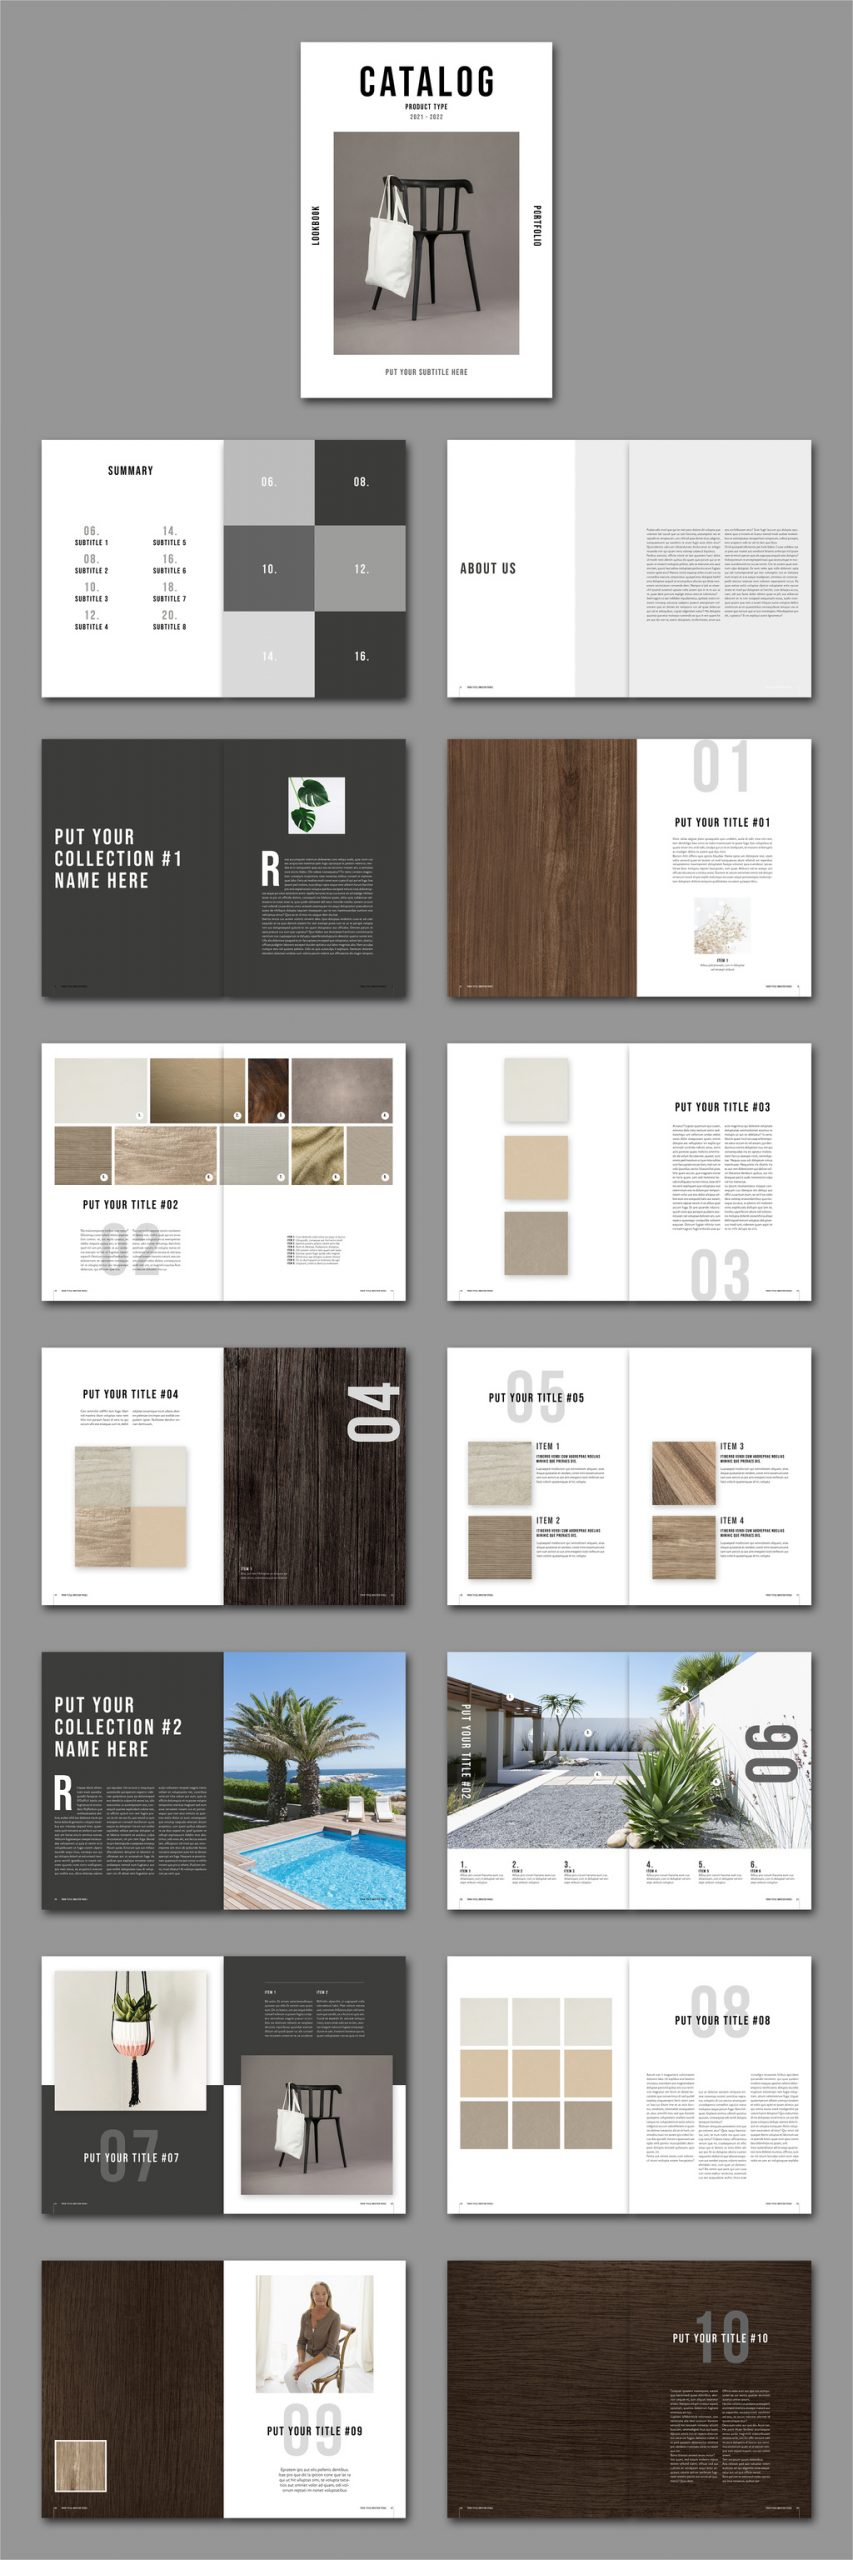 Catalog and Lookbook InDesign Template by Tom Sarraipo.